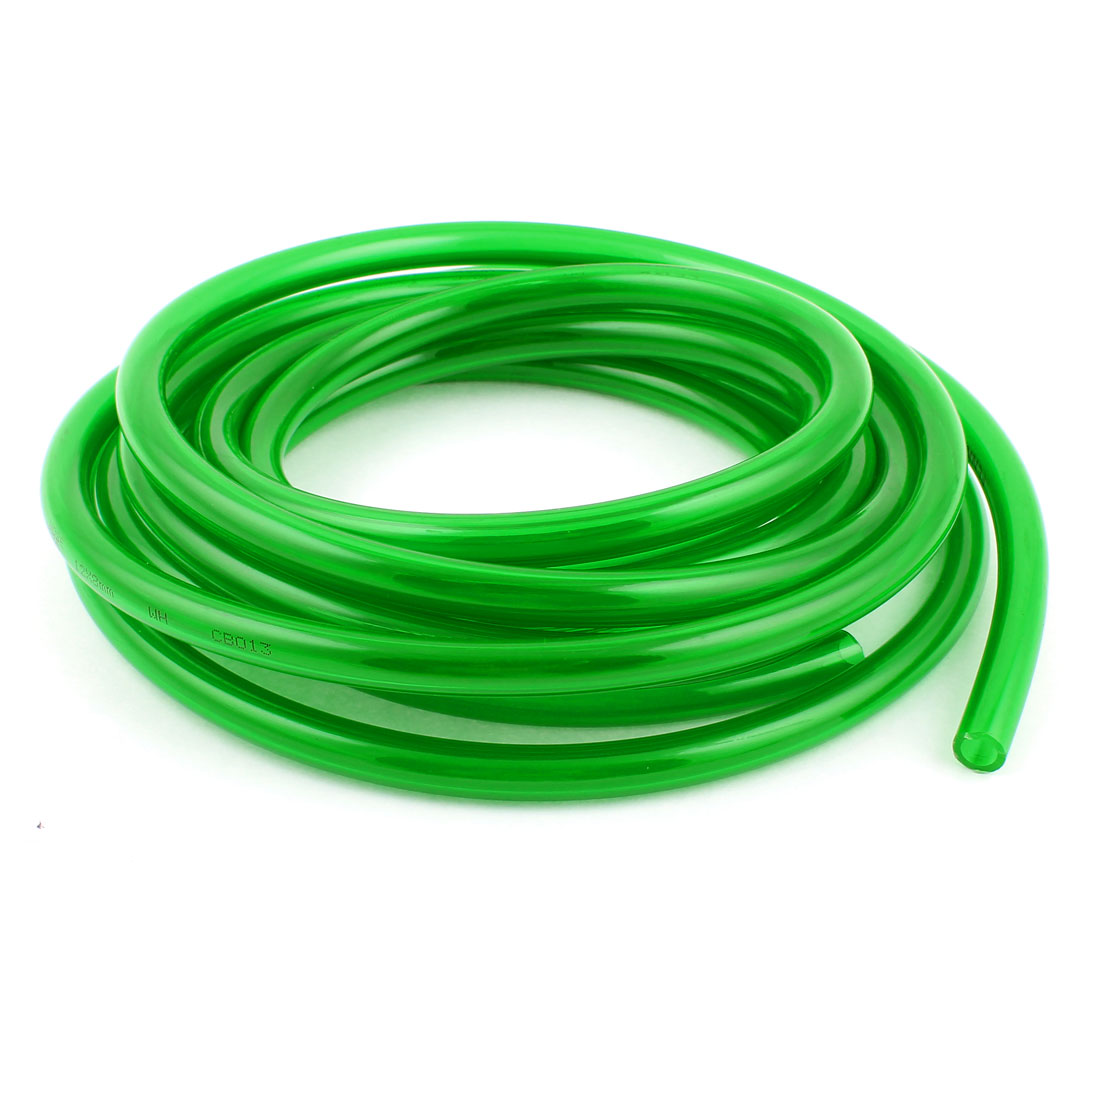 5m 16.4ft 12mmx8mm Pneumatic Polyurethane PU Hose Tube Pipe Clear Green